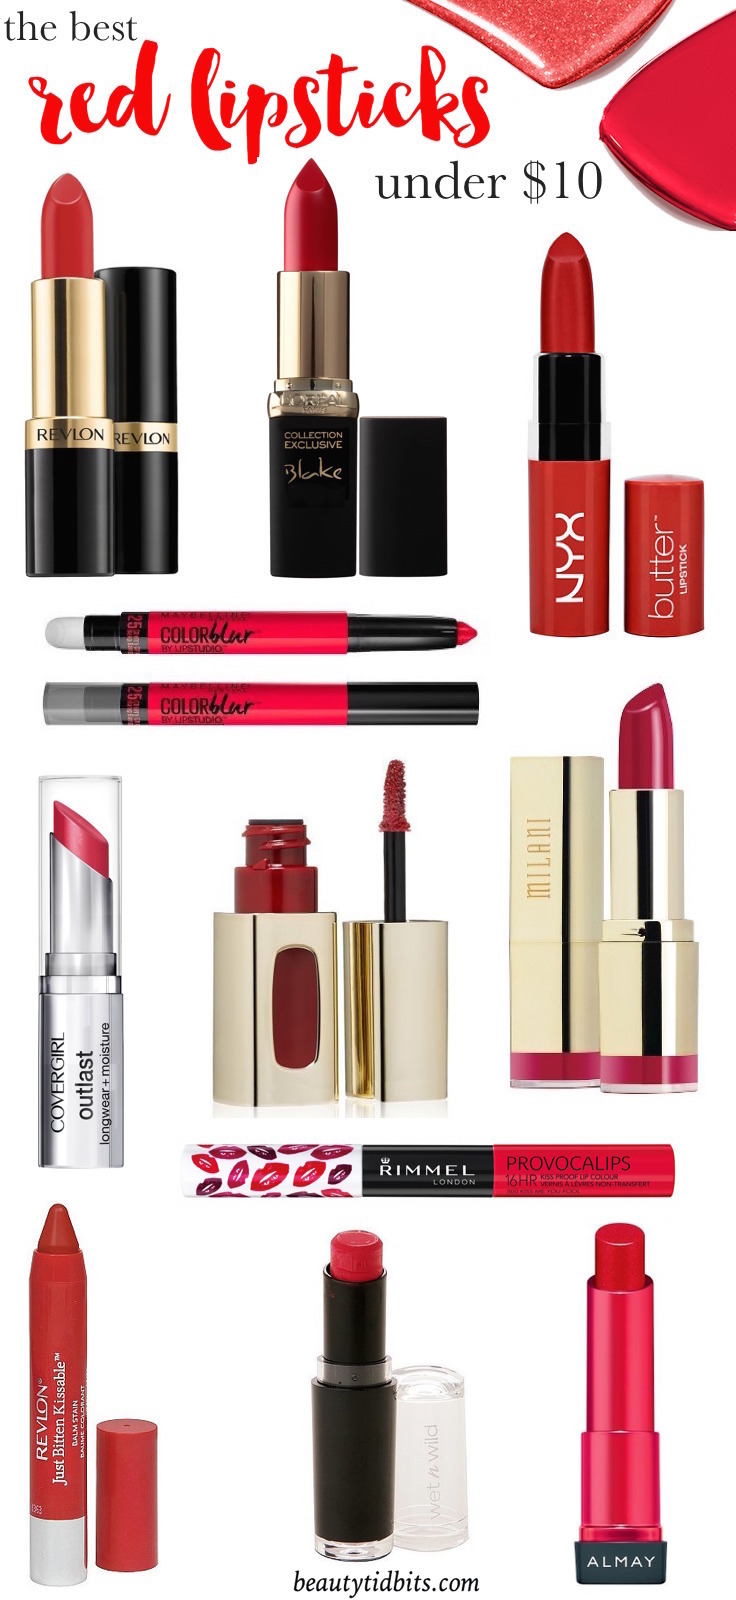 Best drugstore red lipsticks under 10